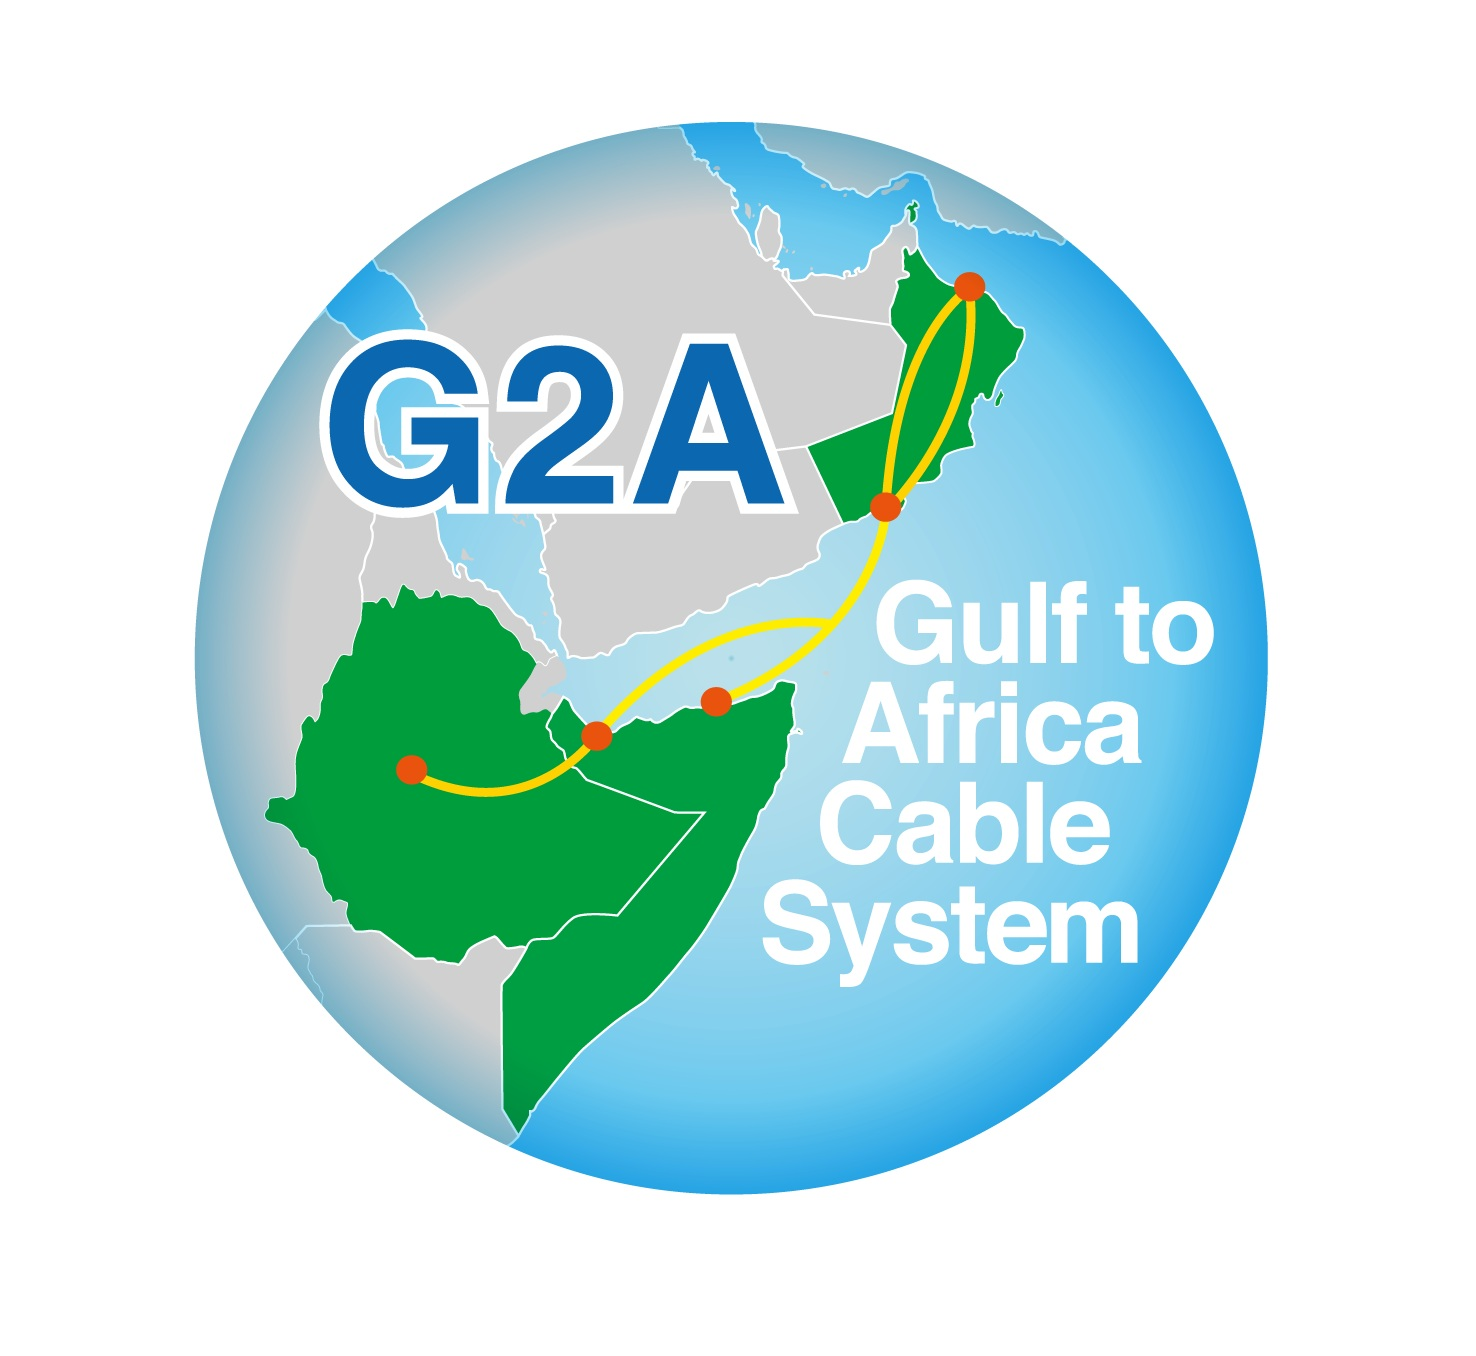 Gulf to Africa, G2A, a New Groundbreaking Cable System Between Oman, Somaliland, Puntland, and Ethiopia That Will Develop the Telecommunications in Eastern Africa Using X